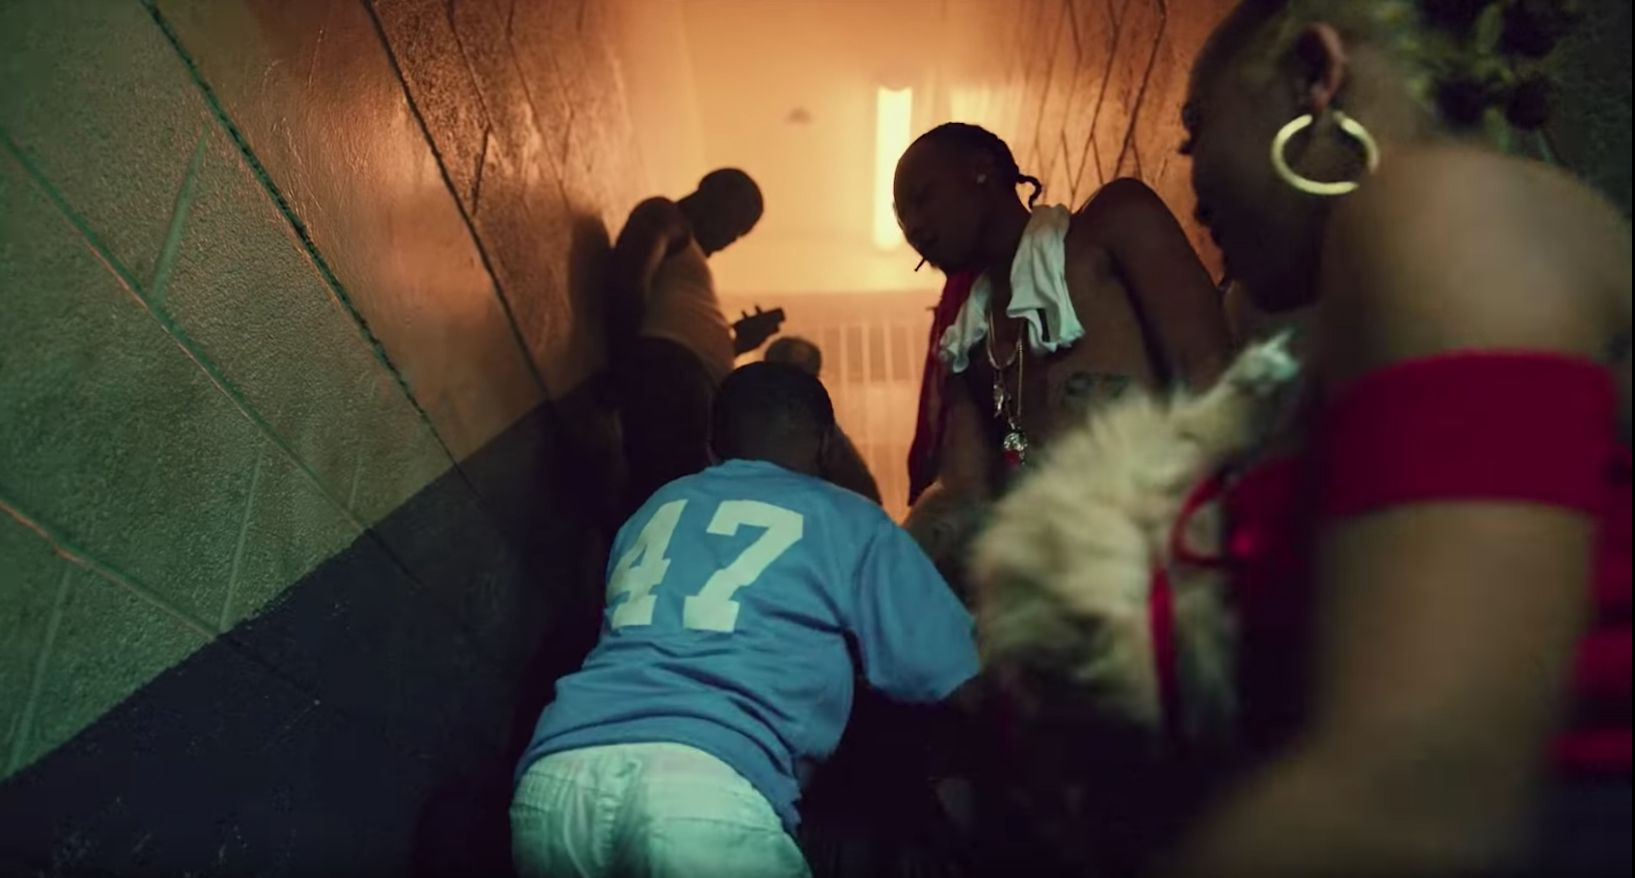 Jay Z Marcy Me Directed By Safdie Brothers Jay Z Photo Mirror Selfie